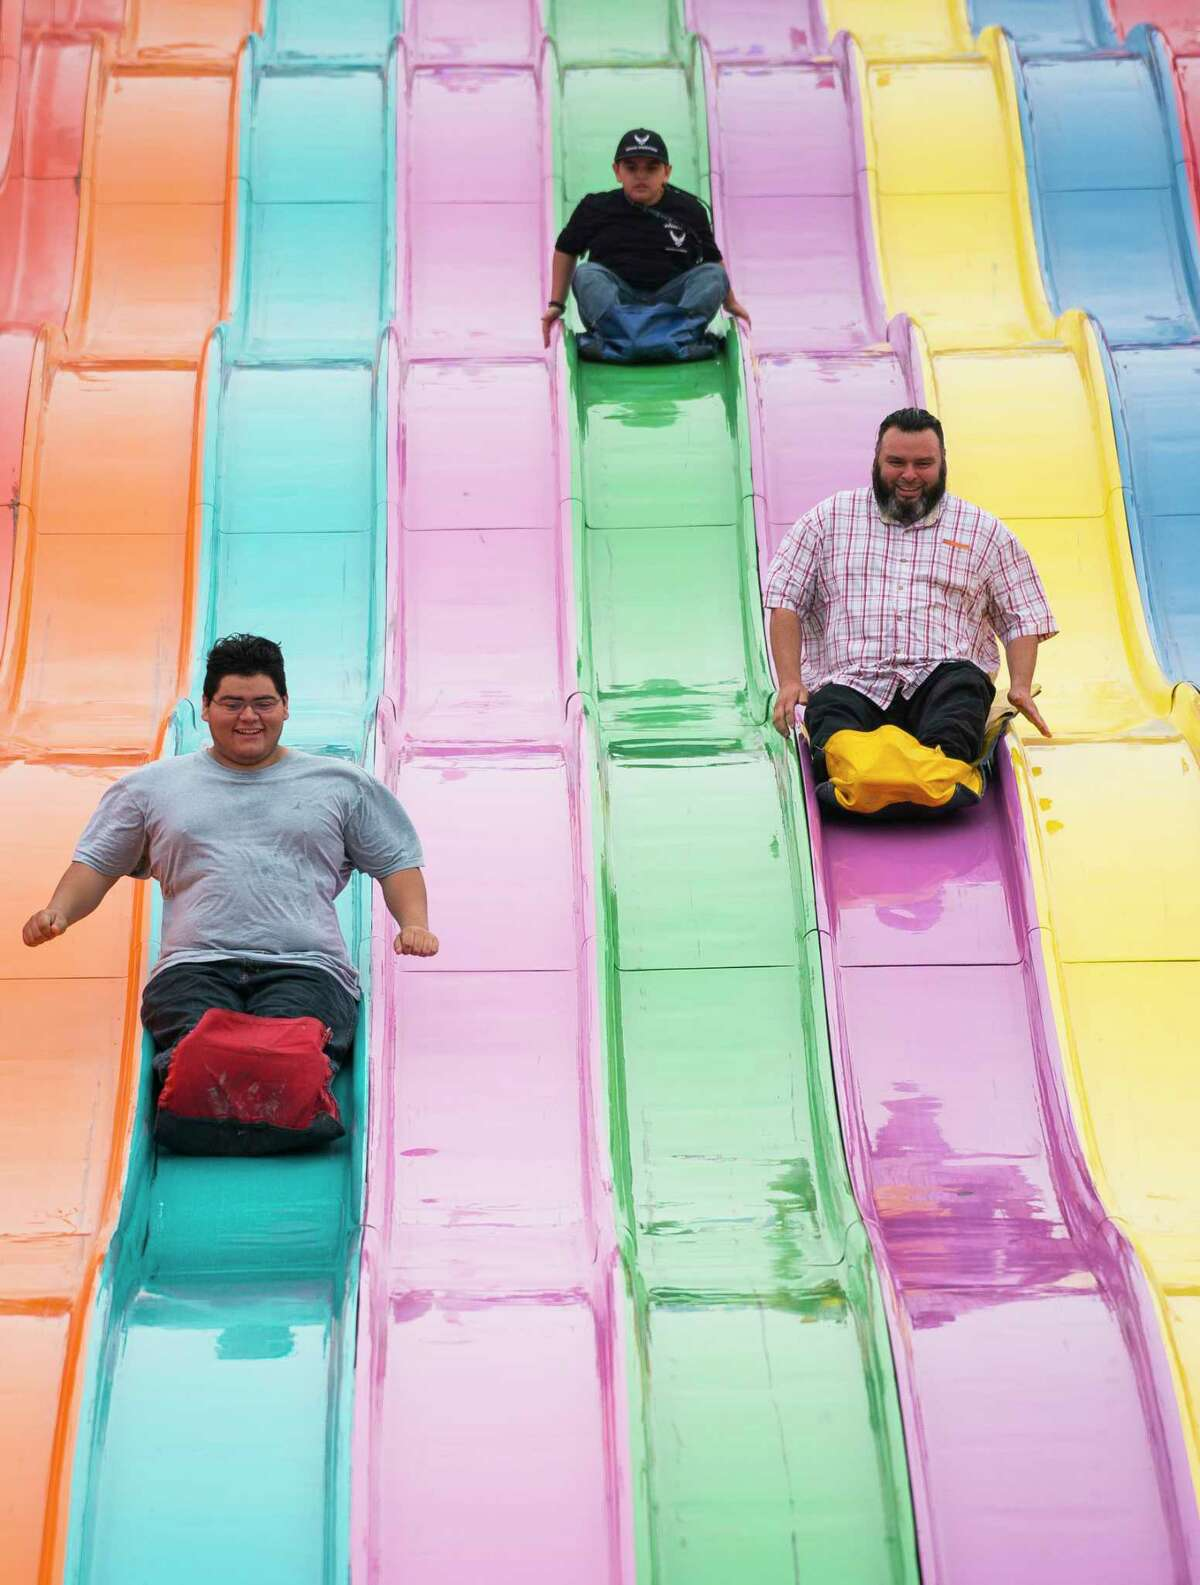 (LtoR) Dylan Eves, 16, Liam Eves, 8, and James Eves slide down the giant slides at the carnival of the Houston Livestock Show and Rodeo, Wednesday, Feb. 27, 2019 in Houston.